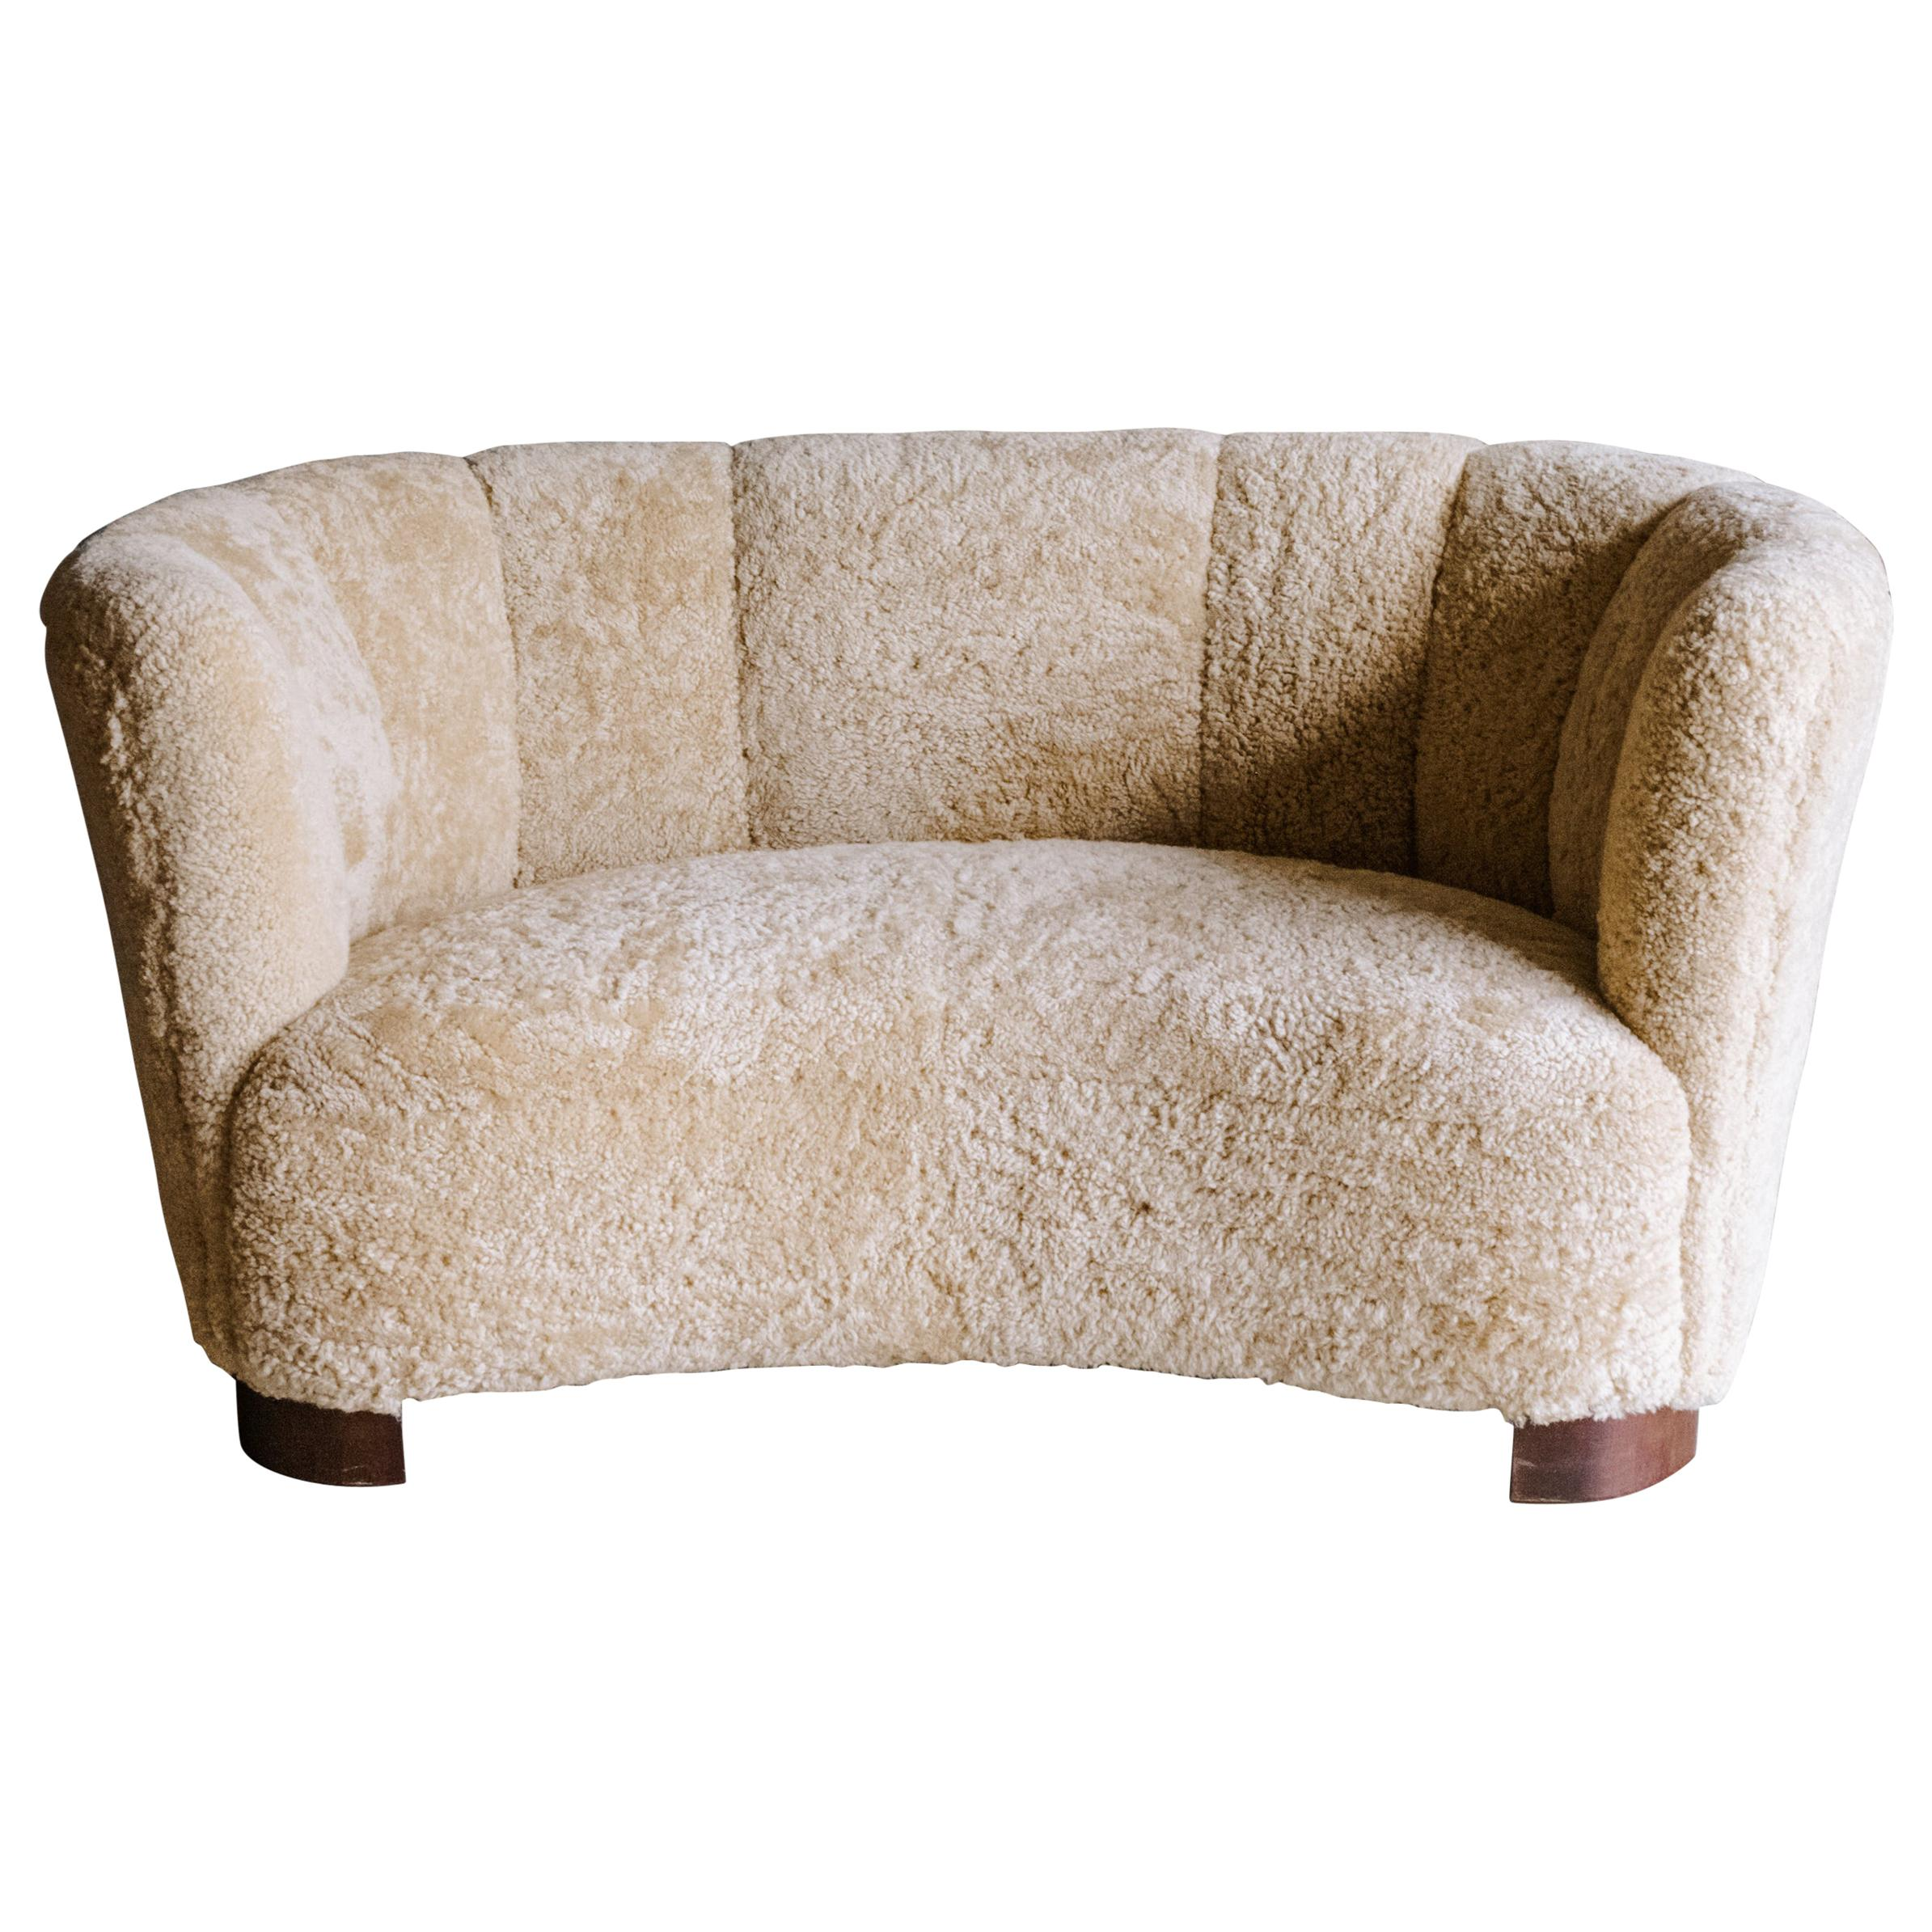 Vintage Curved Two Seater Sofa in Sheepskin, from Denmark, Circa 1950